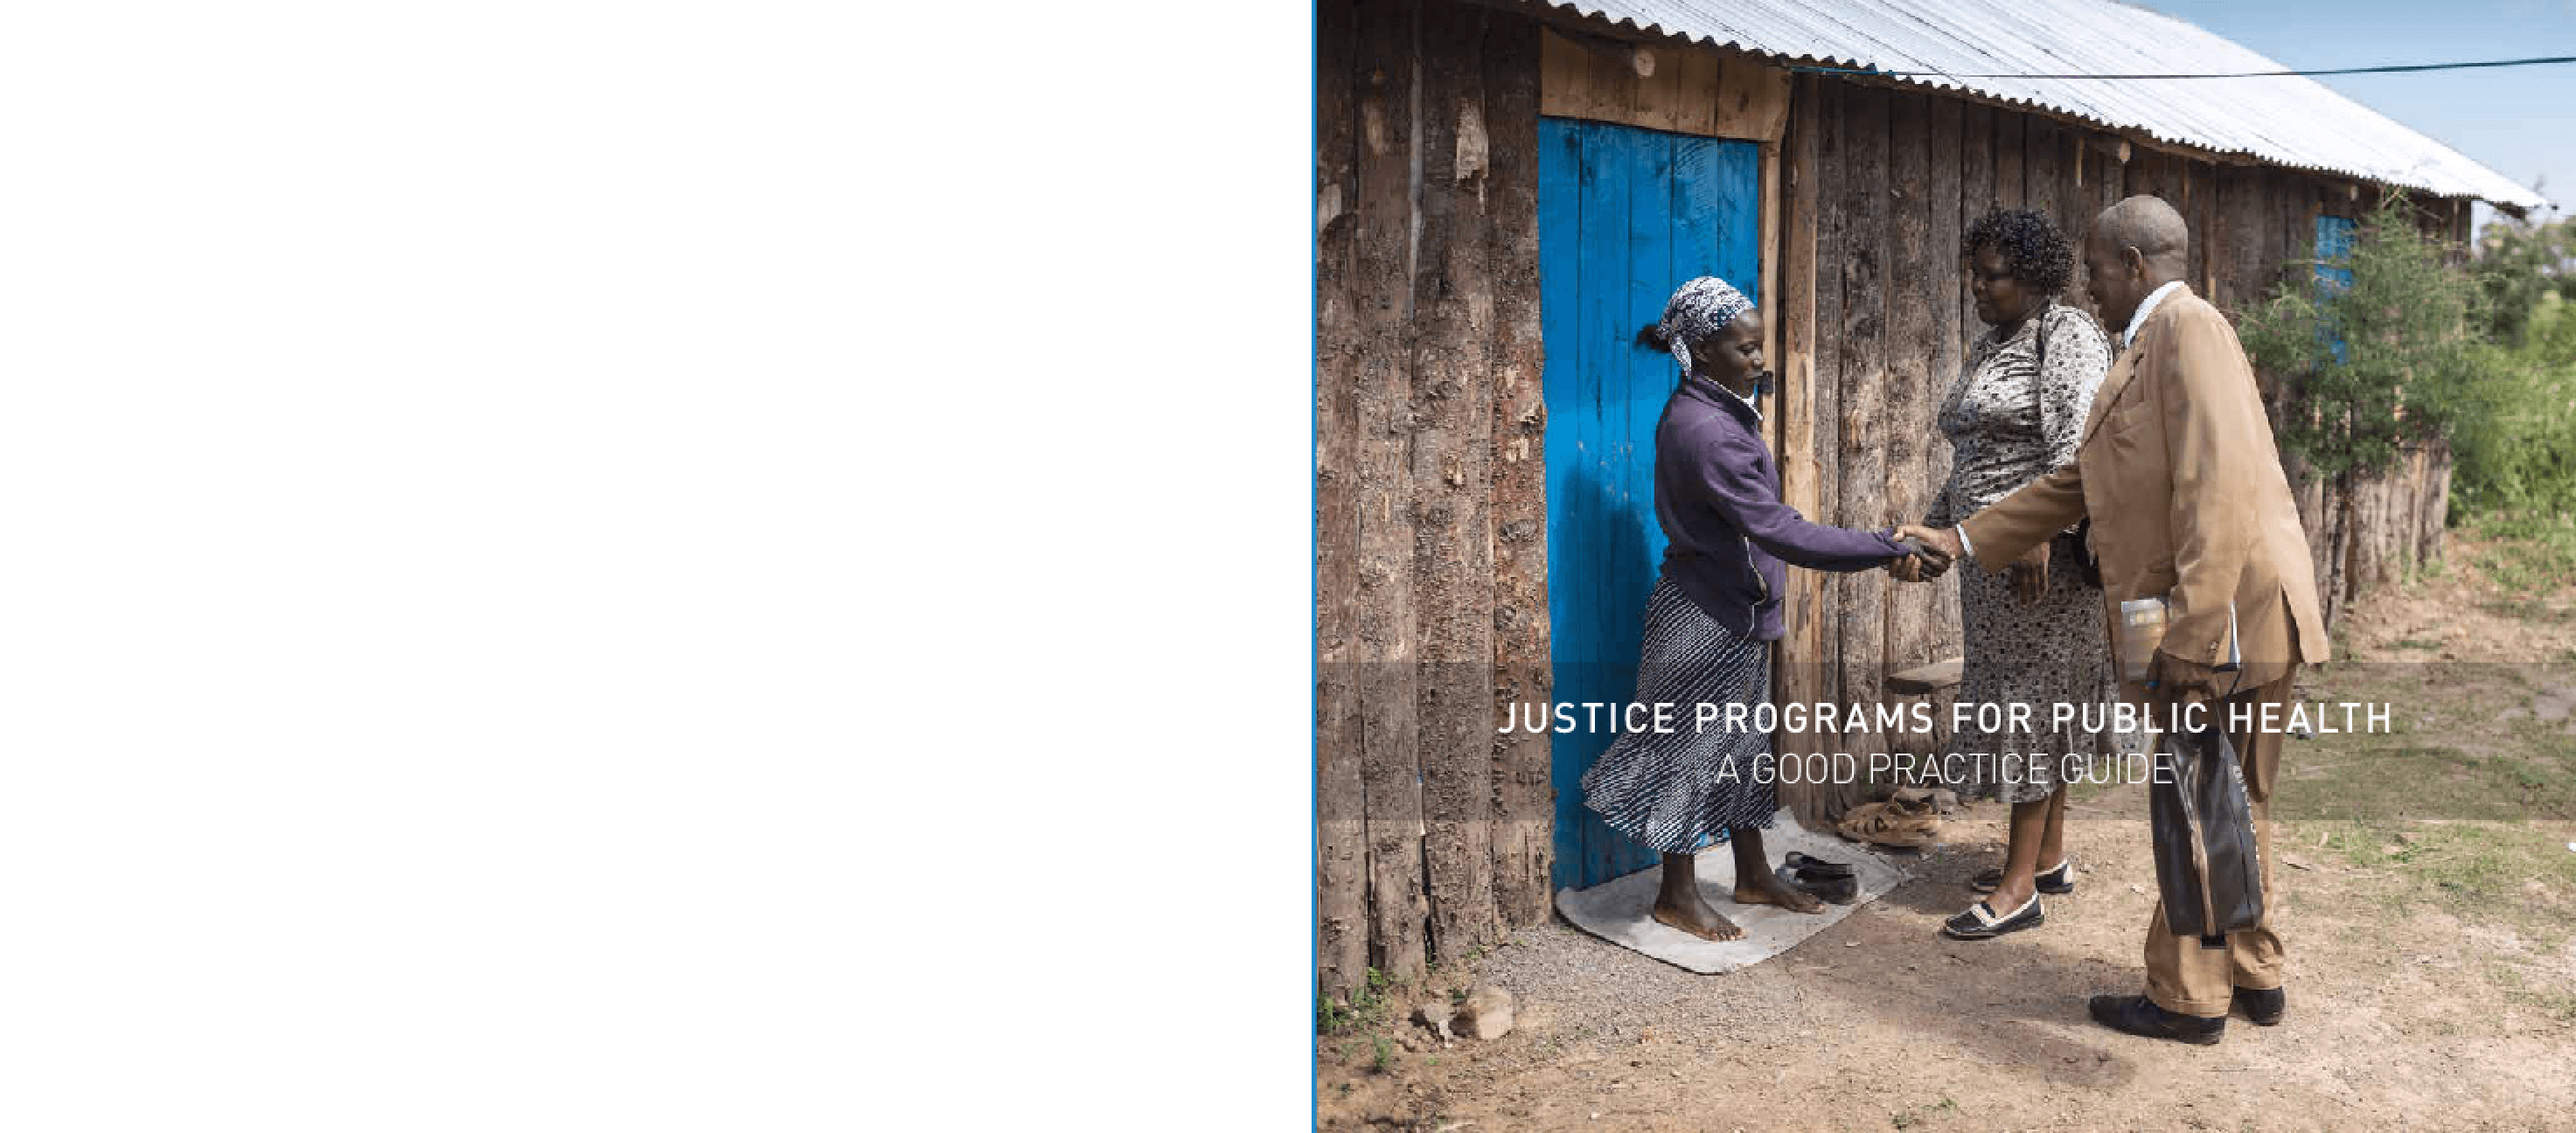 Justice Programs for Public Health: A Good Practice Guide